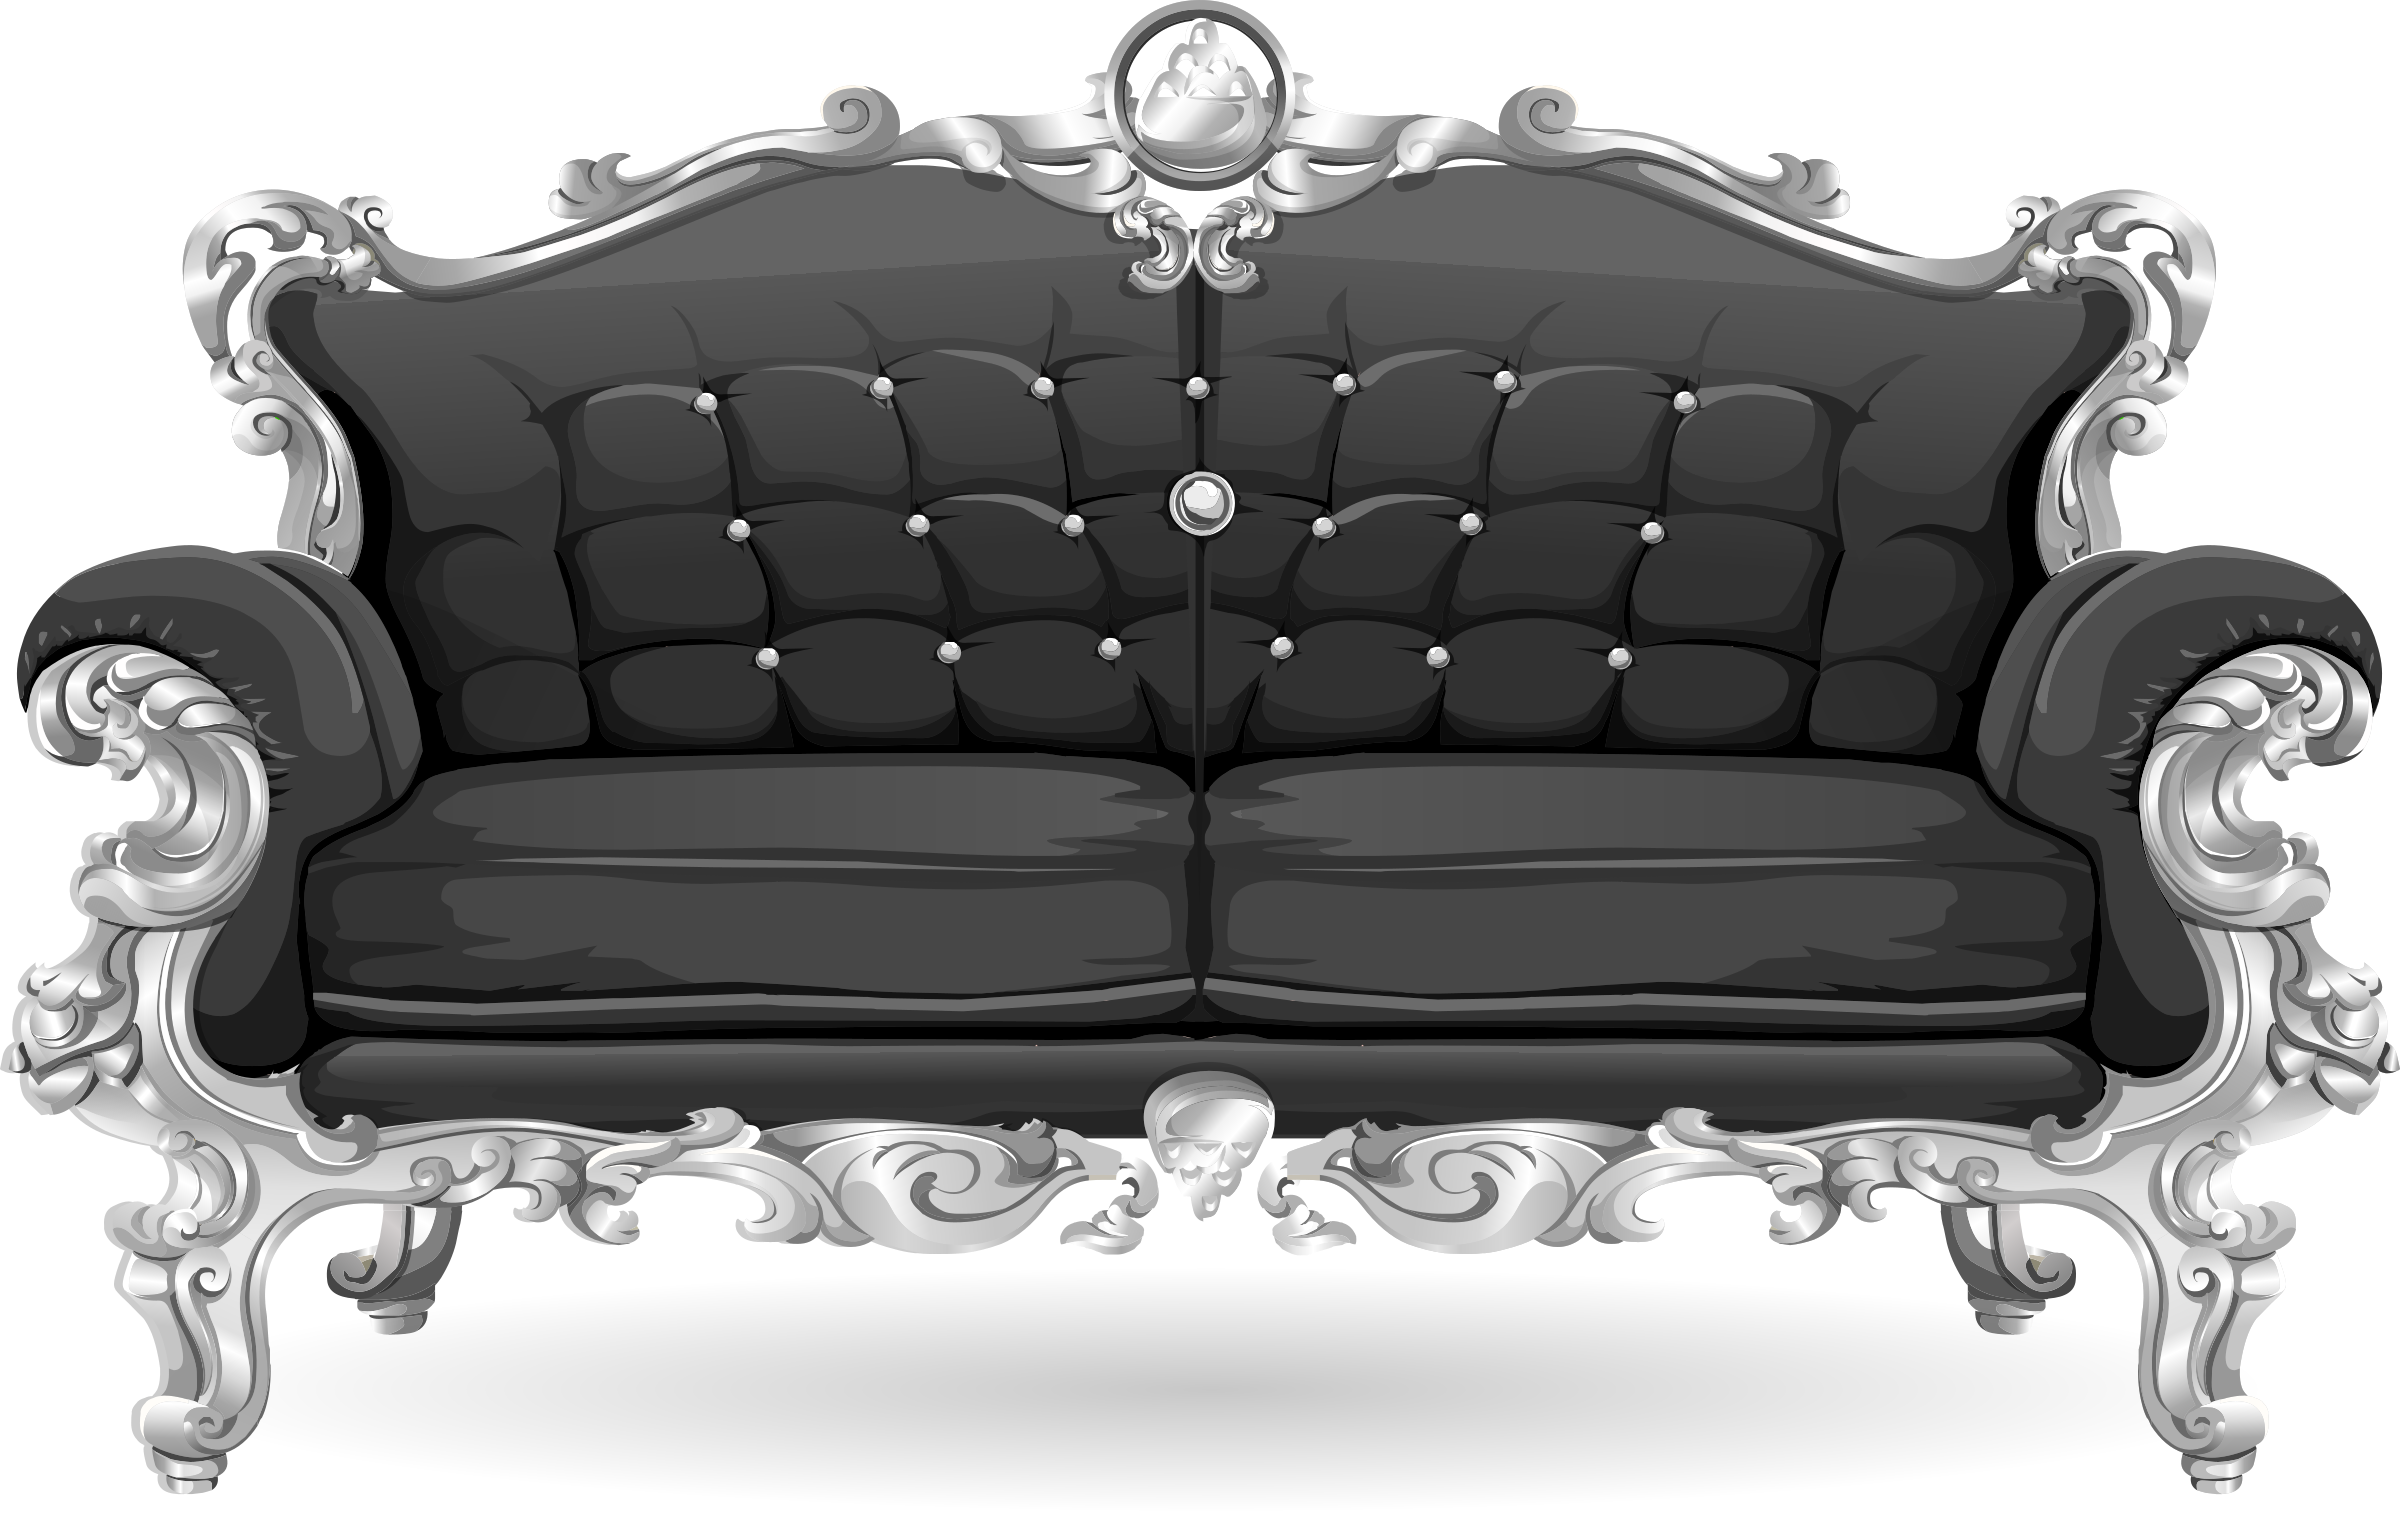 Big Sofa Clipart Baroque Sofa From Glitch Maurice Dufrene